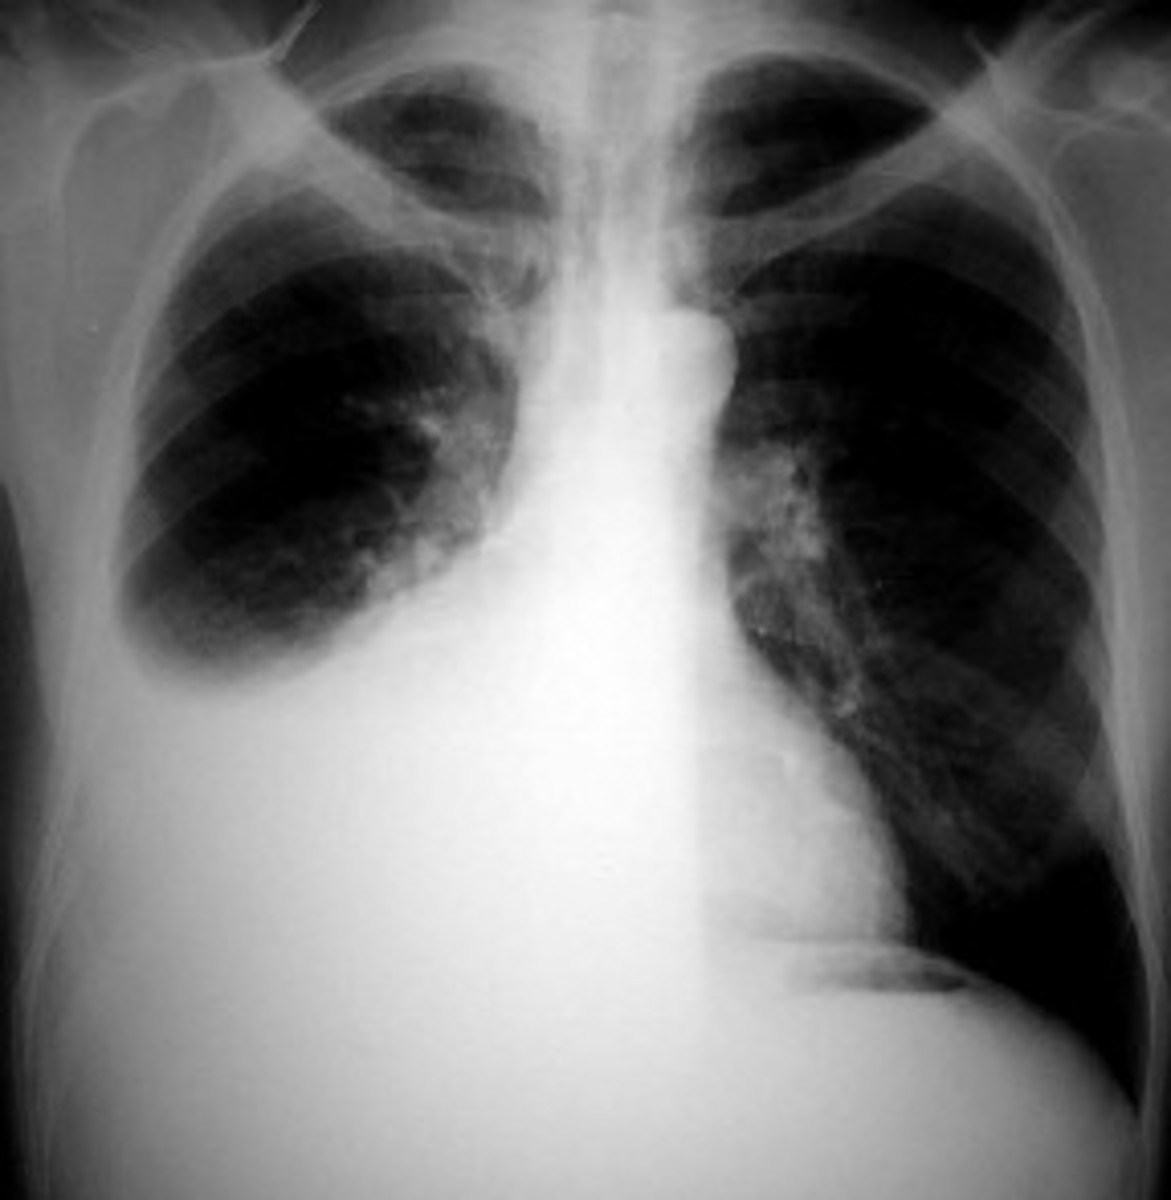 Clinical details and basic medical information about Pleurisy and Pyogenic lung diseases